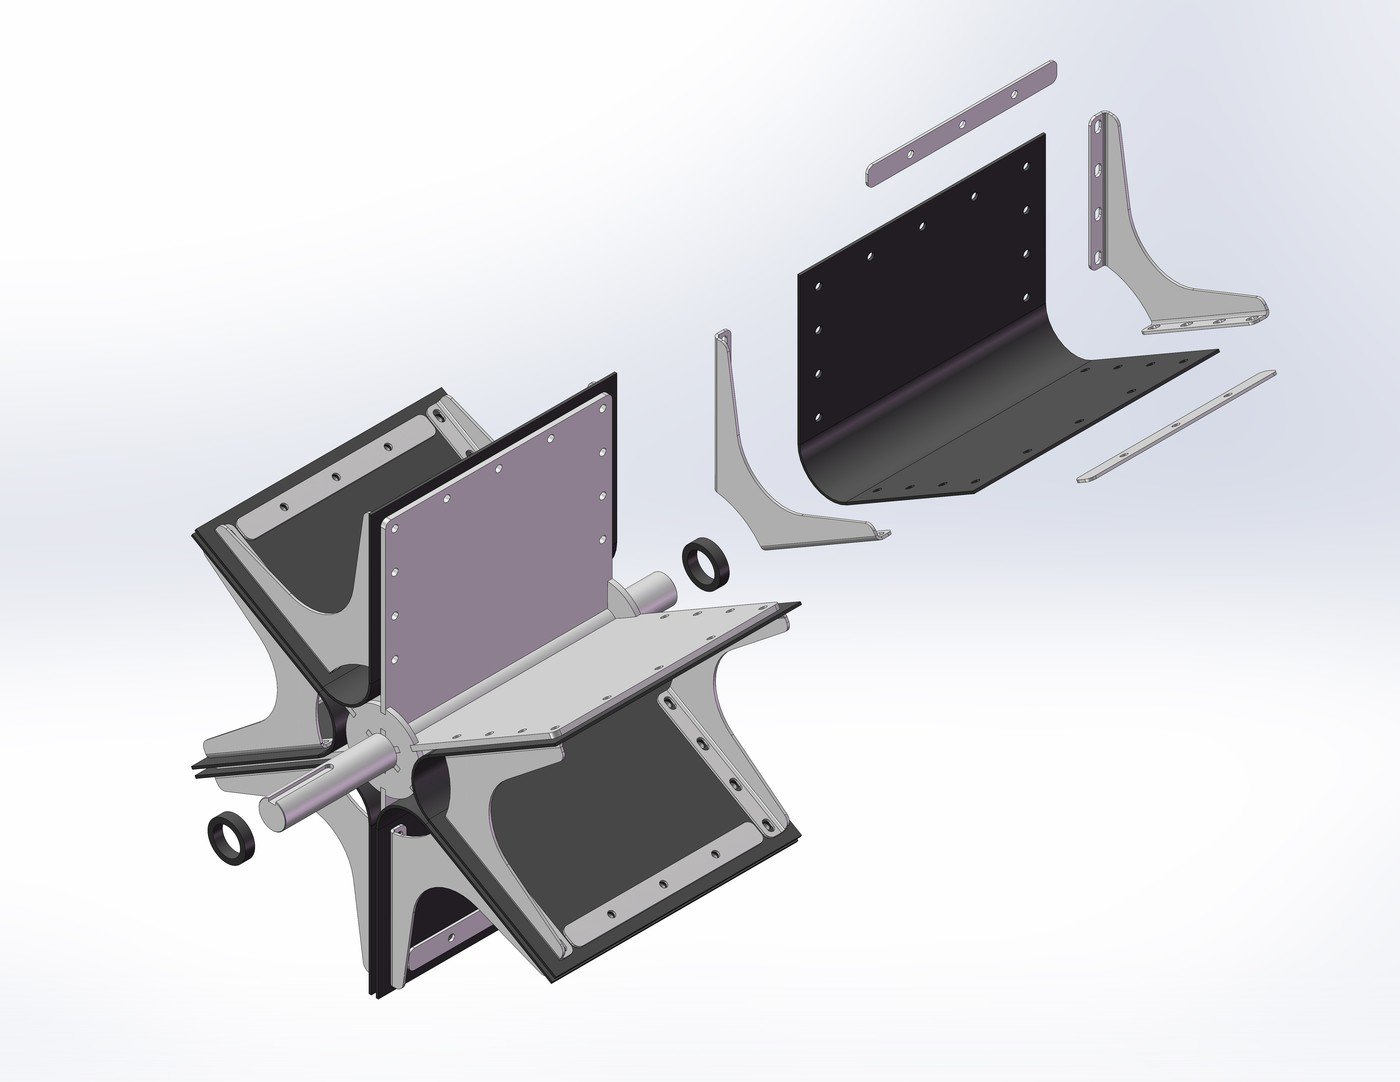 SolidWorks Designs: Parts and Assemblies by Matthew